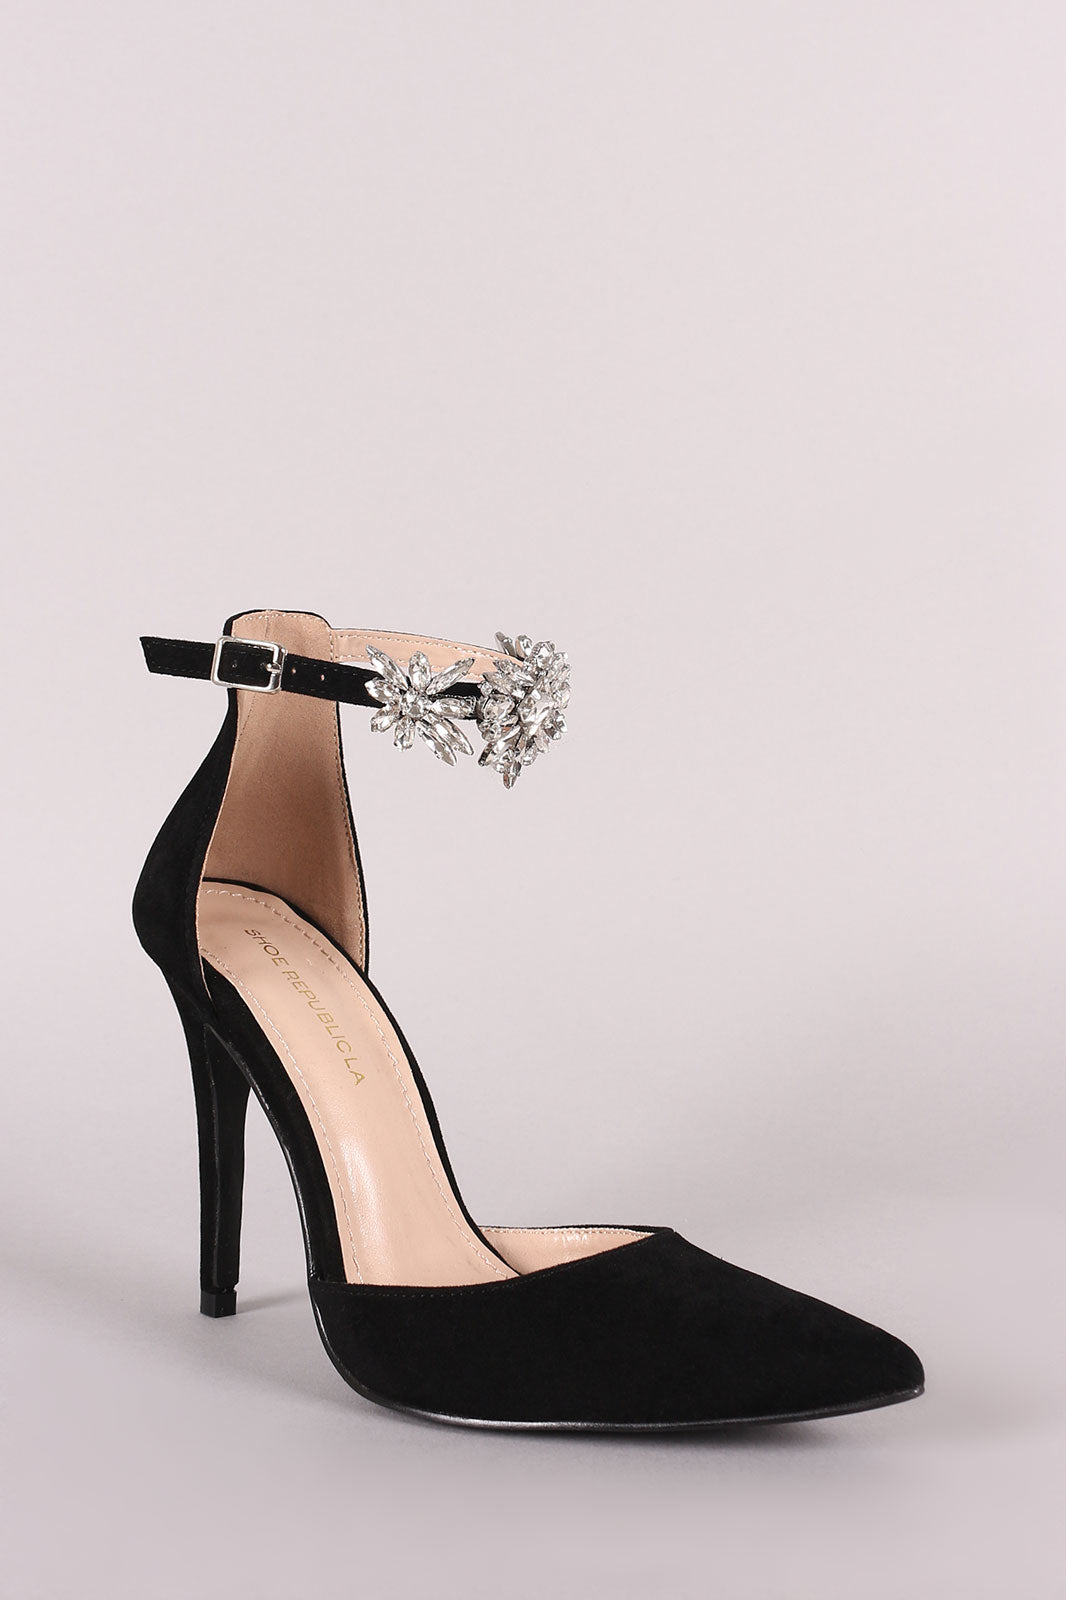 Jeweled Ankle Strap Pump